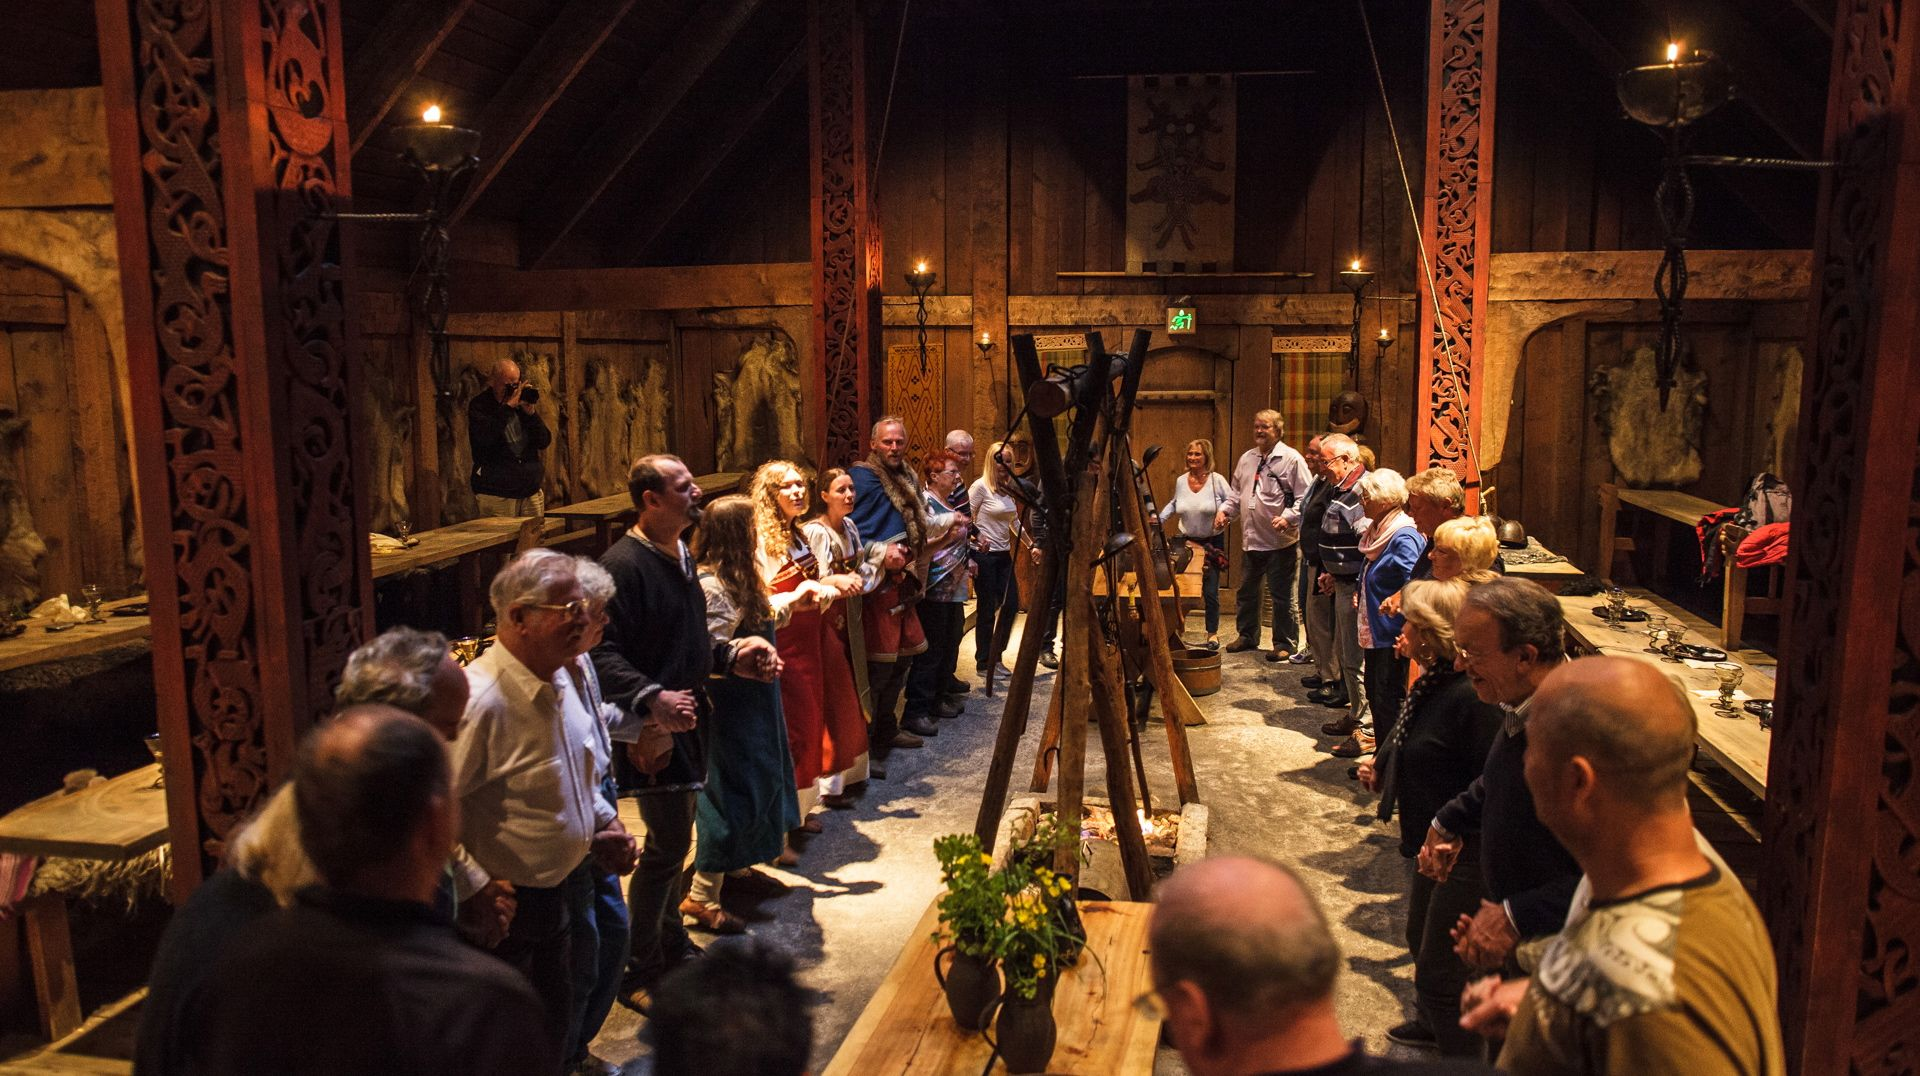 Join Us In A Viking Feast In The Impressive Longhouse At Borg In - Scandinavian museums in us